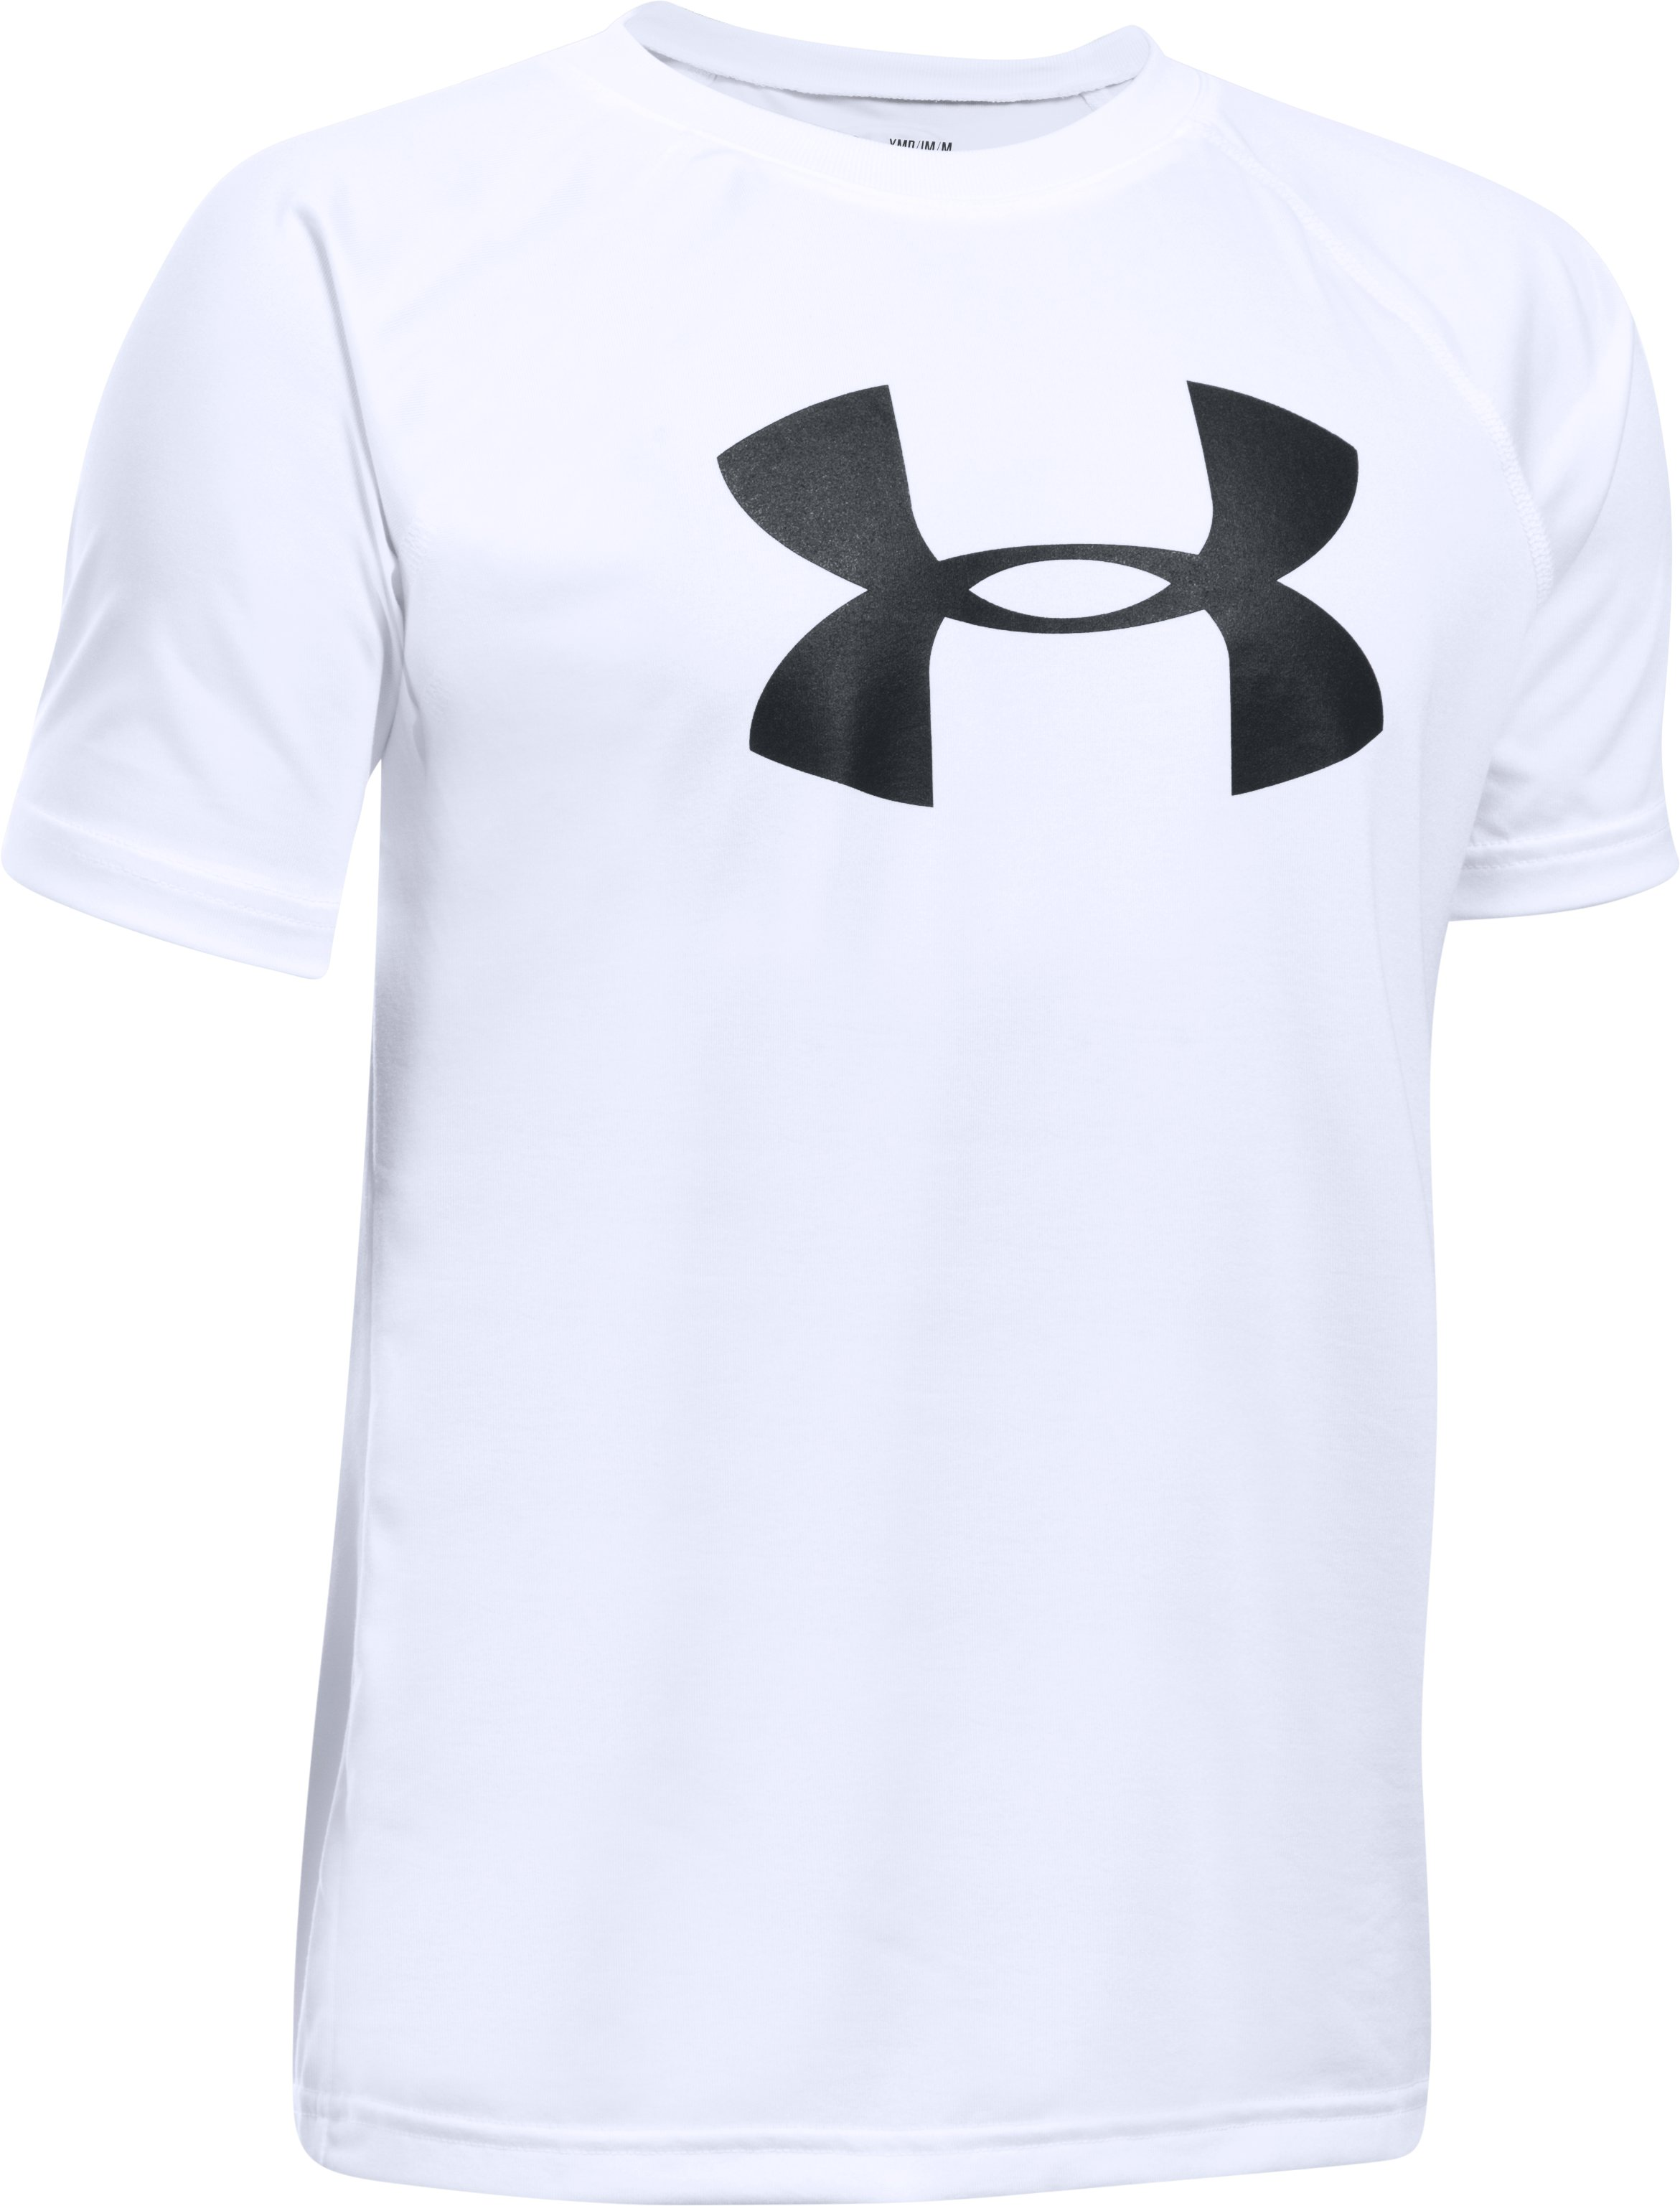 Boys' UA Tech™ Big Logo Short Sleeve T-Shirt, White, zoomed image